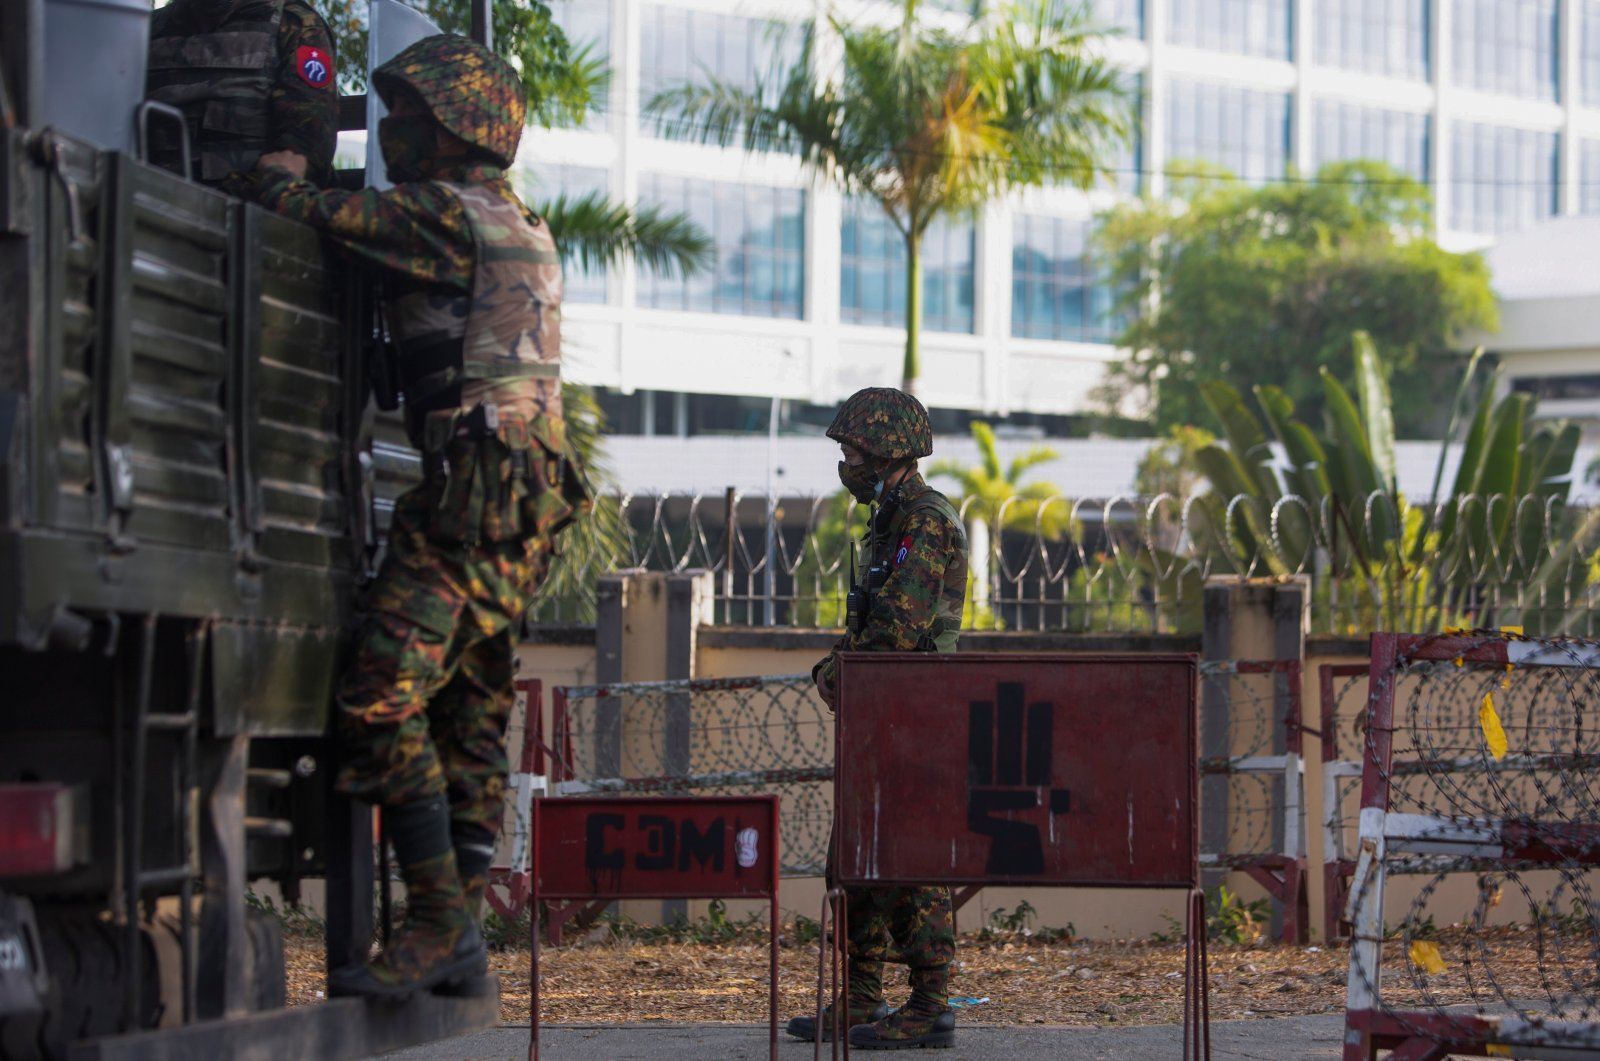 A soldier stands guard next to an army vehicle outside Myanmar's central bank, in Yangon, Myanmar, Feb 15, 2021. (Reuters Photo)